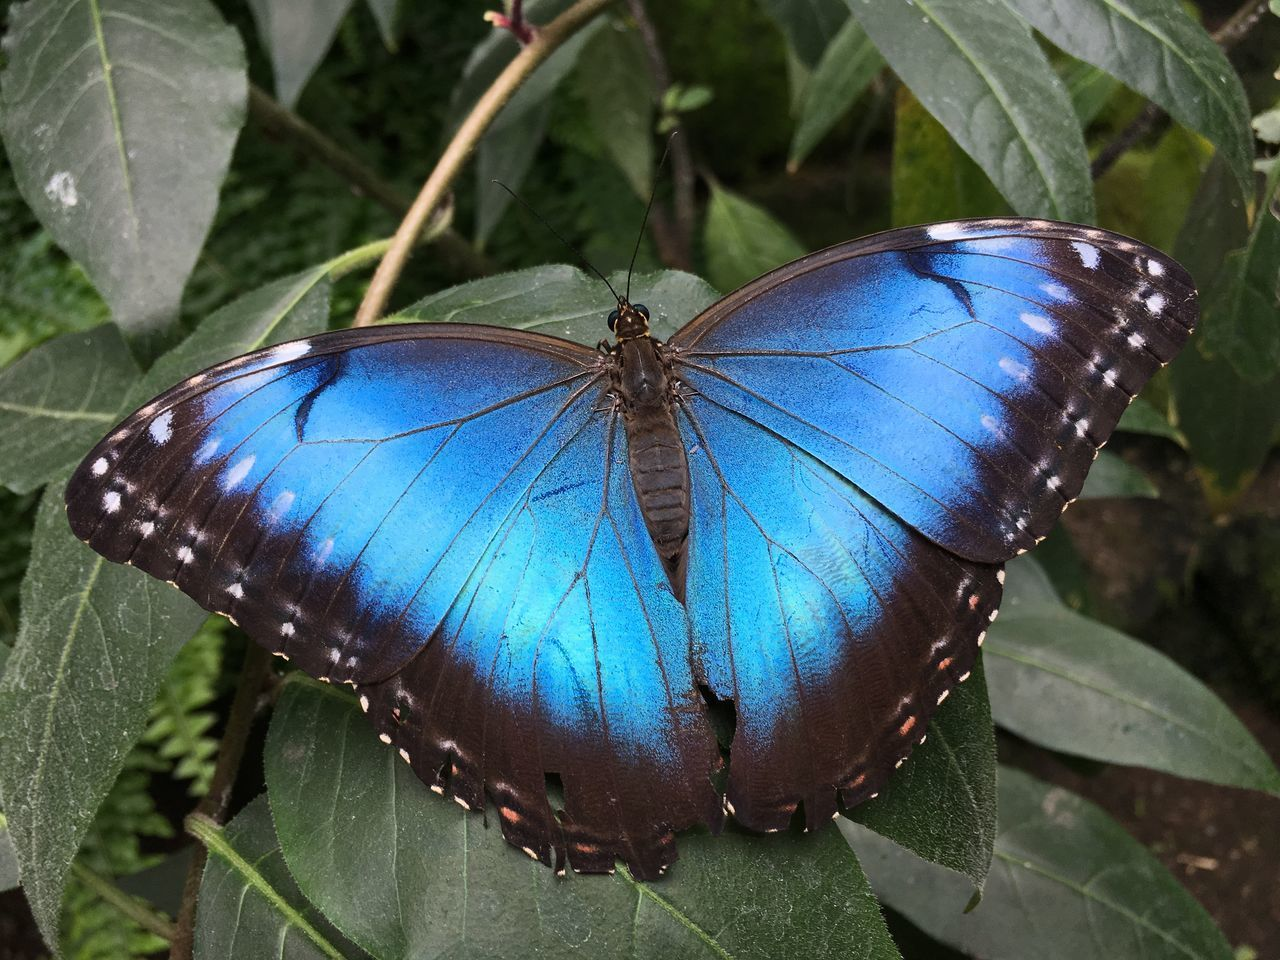 Morpho peleides Beauty In Nature Butterfly Butterfly - Insect Close-up Common Morpho Emperor Fragility Insect Leaf Morpho Peleides Morpho Peleides One Animal Peleides Blue Morpho Plant